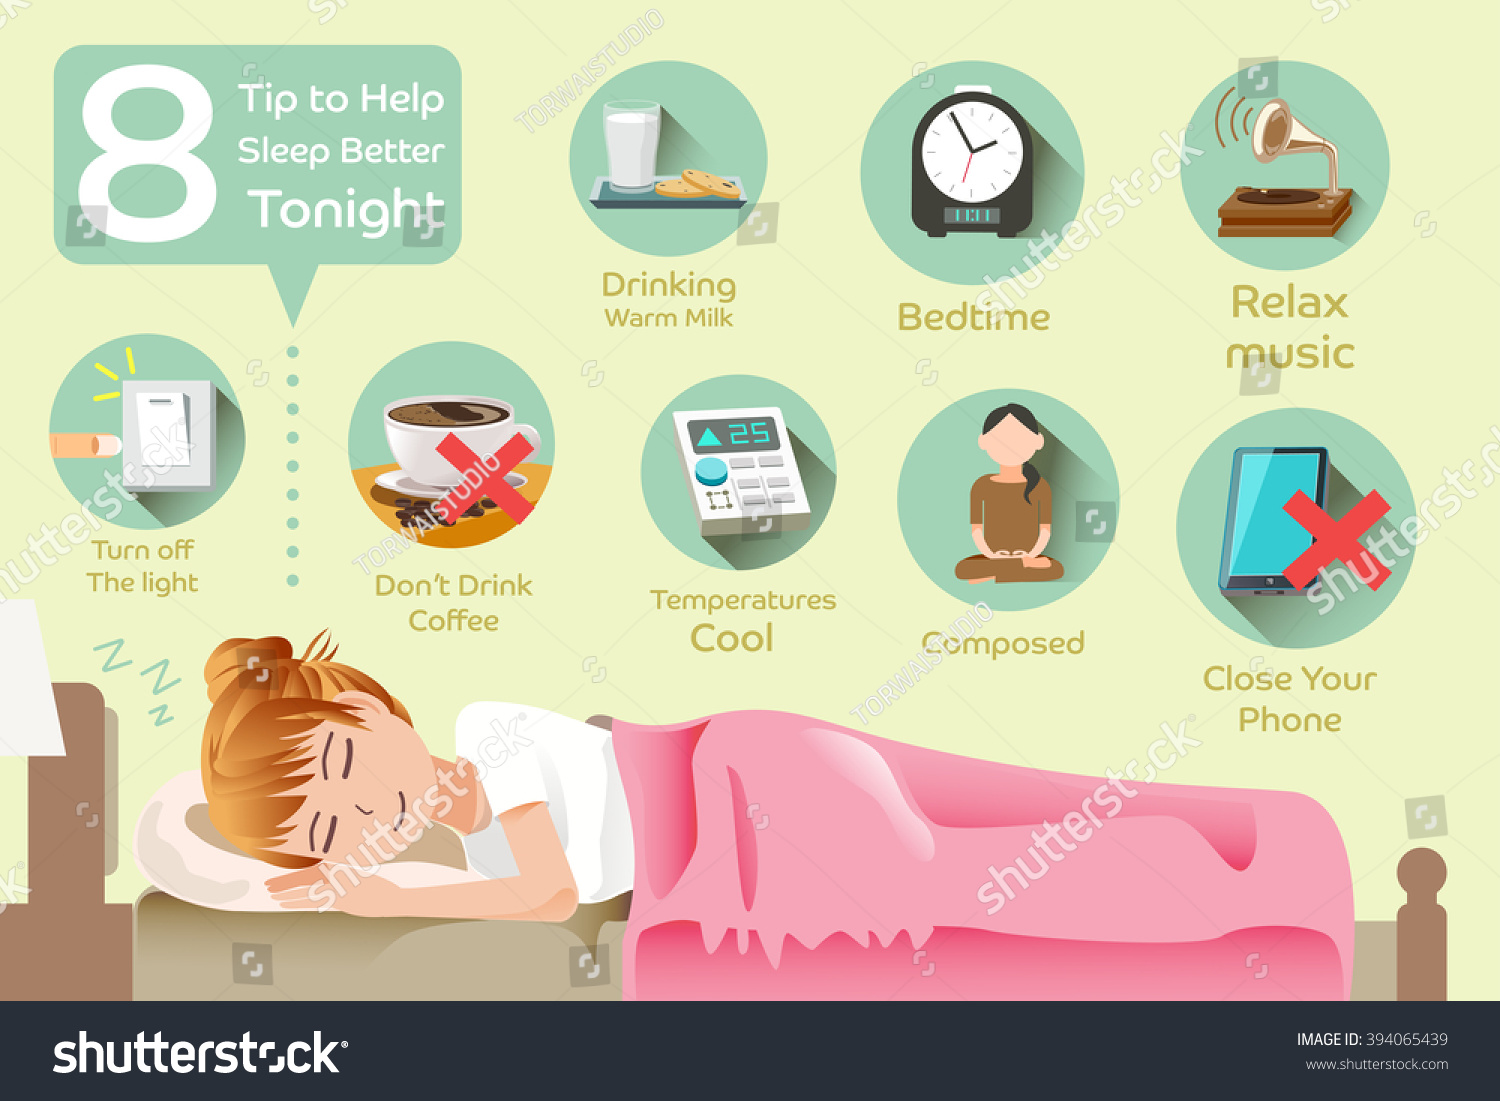 a review of the good sleeping habits Find helpful customer reviews and review ratings for healthy sleep habits, happy child at amazoncom read honest and unbiased product reviews from our users.